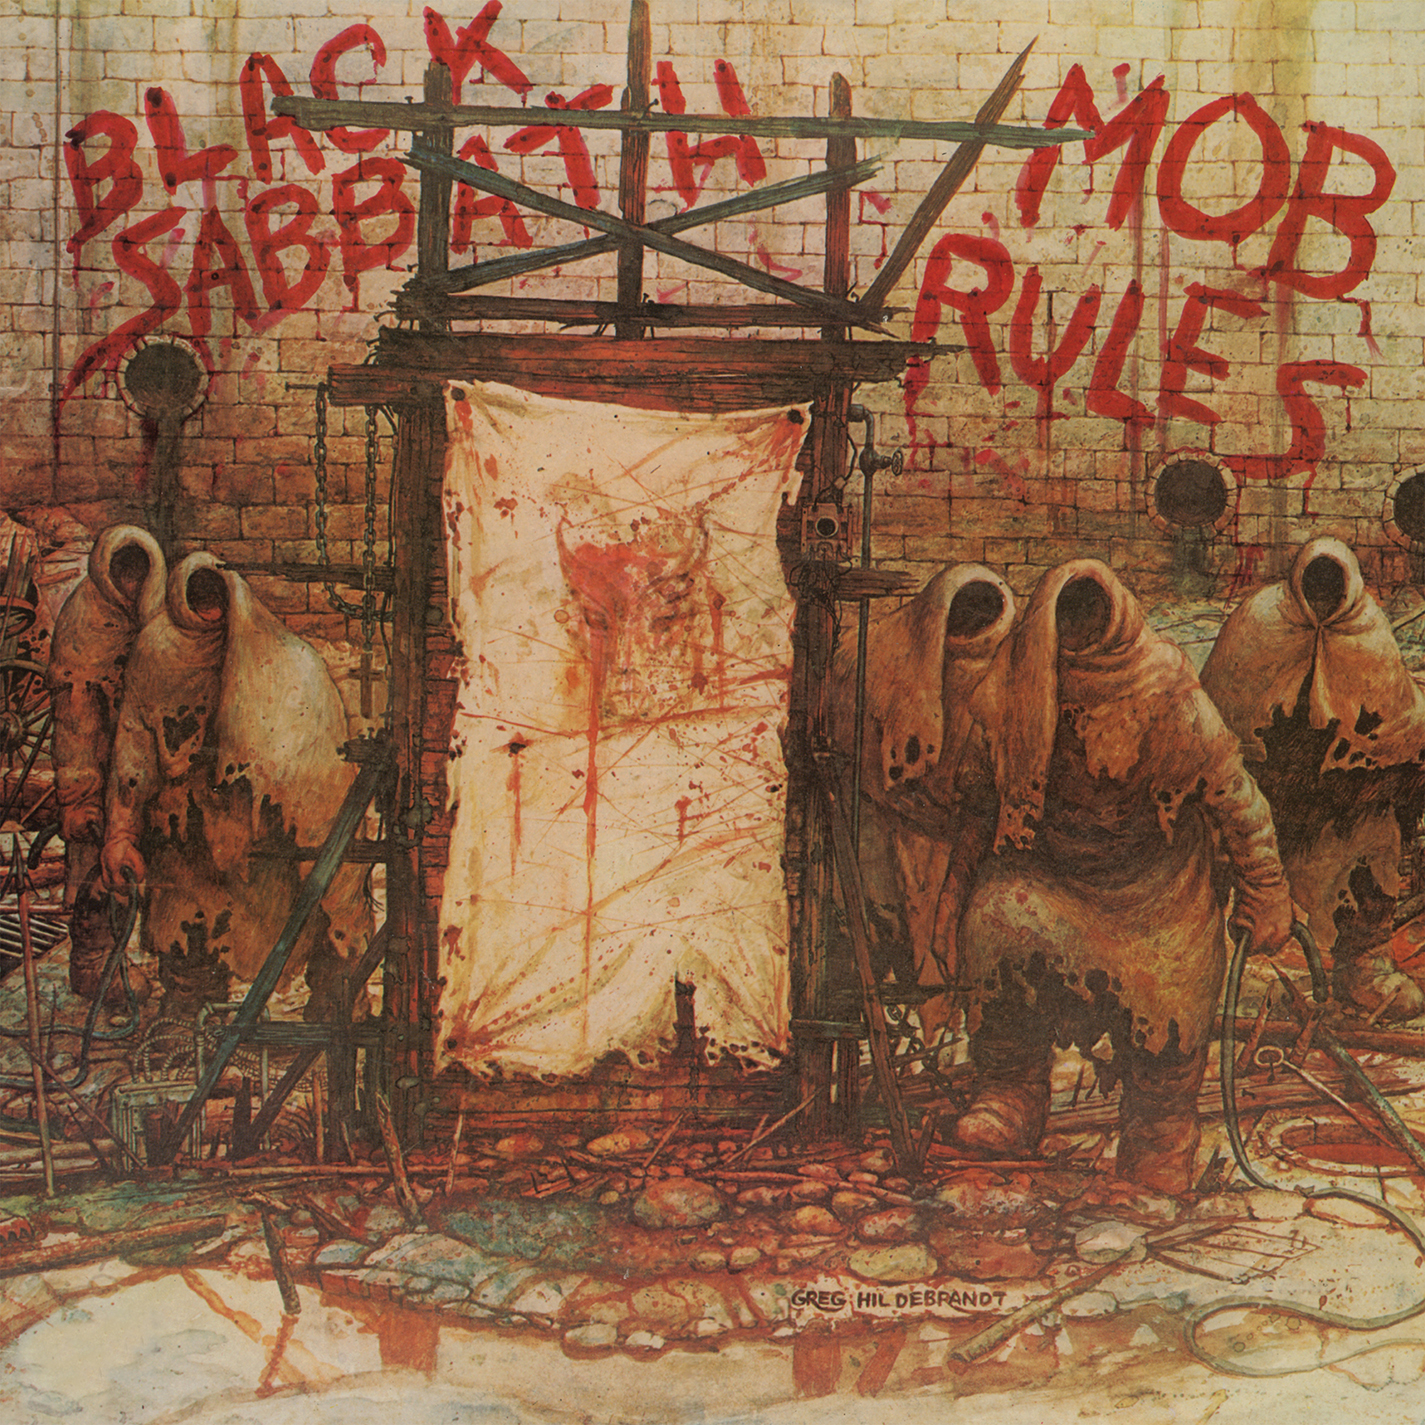 Black Sabbath - Mob Rules [RSD Drops 2021]